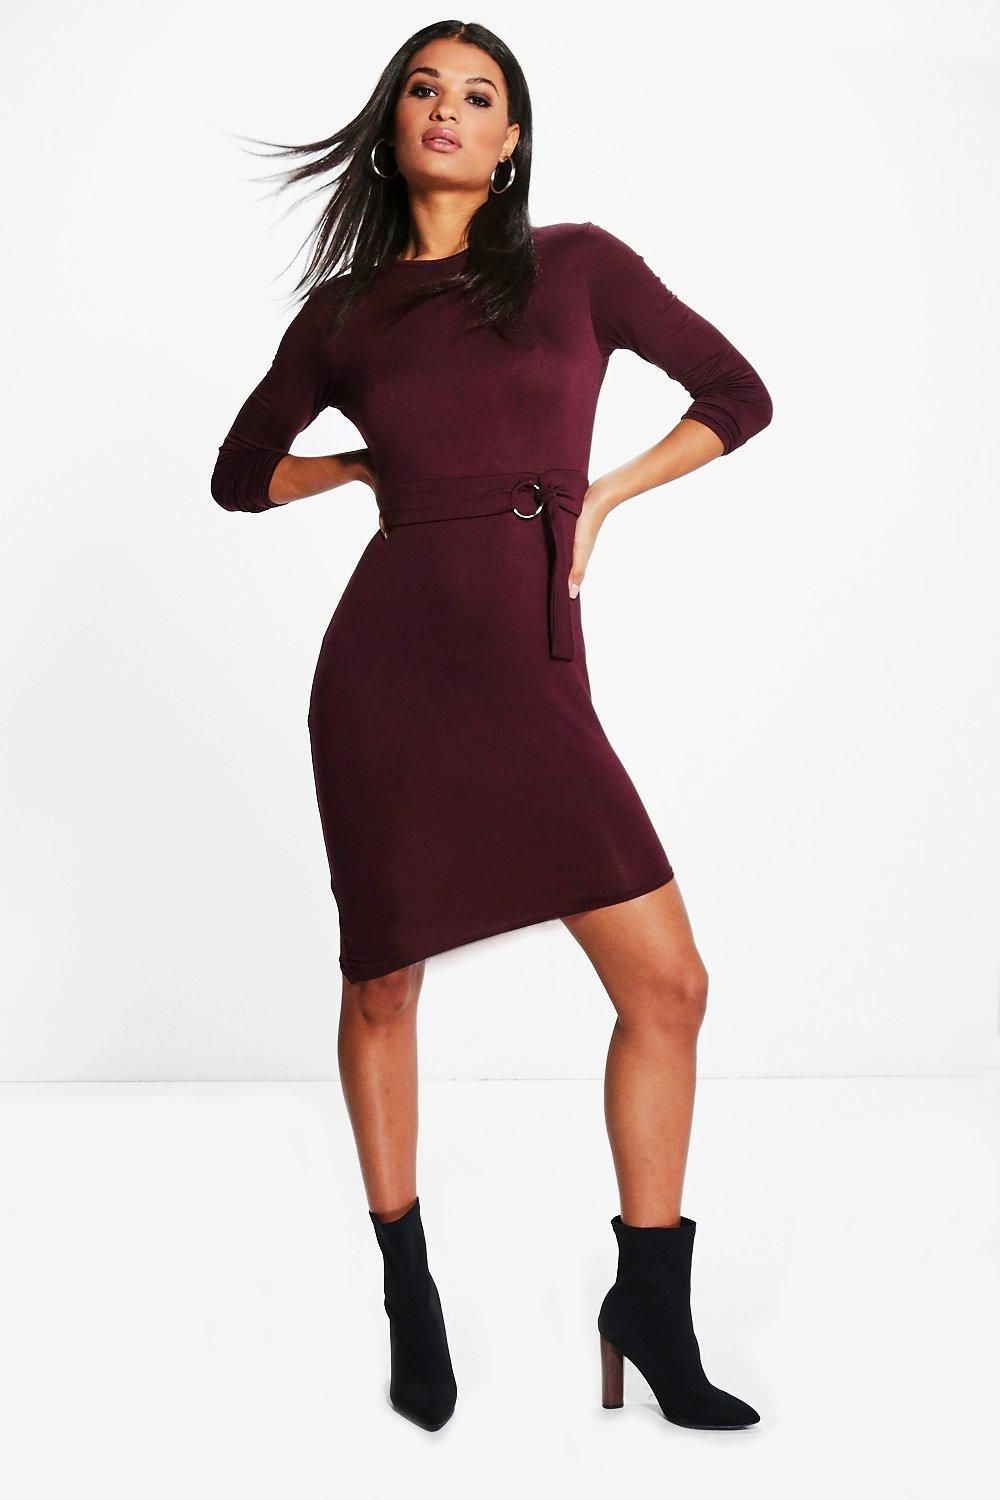 Zoe O-Ring High Neck Bodycon Dress